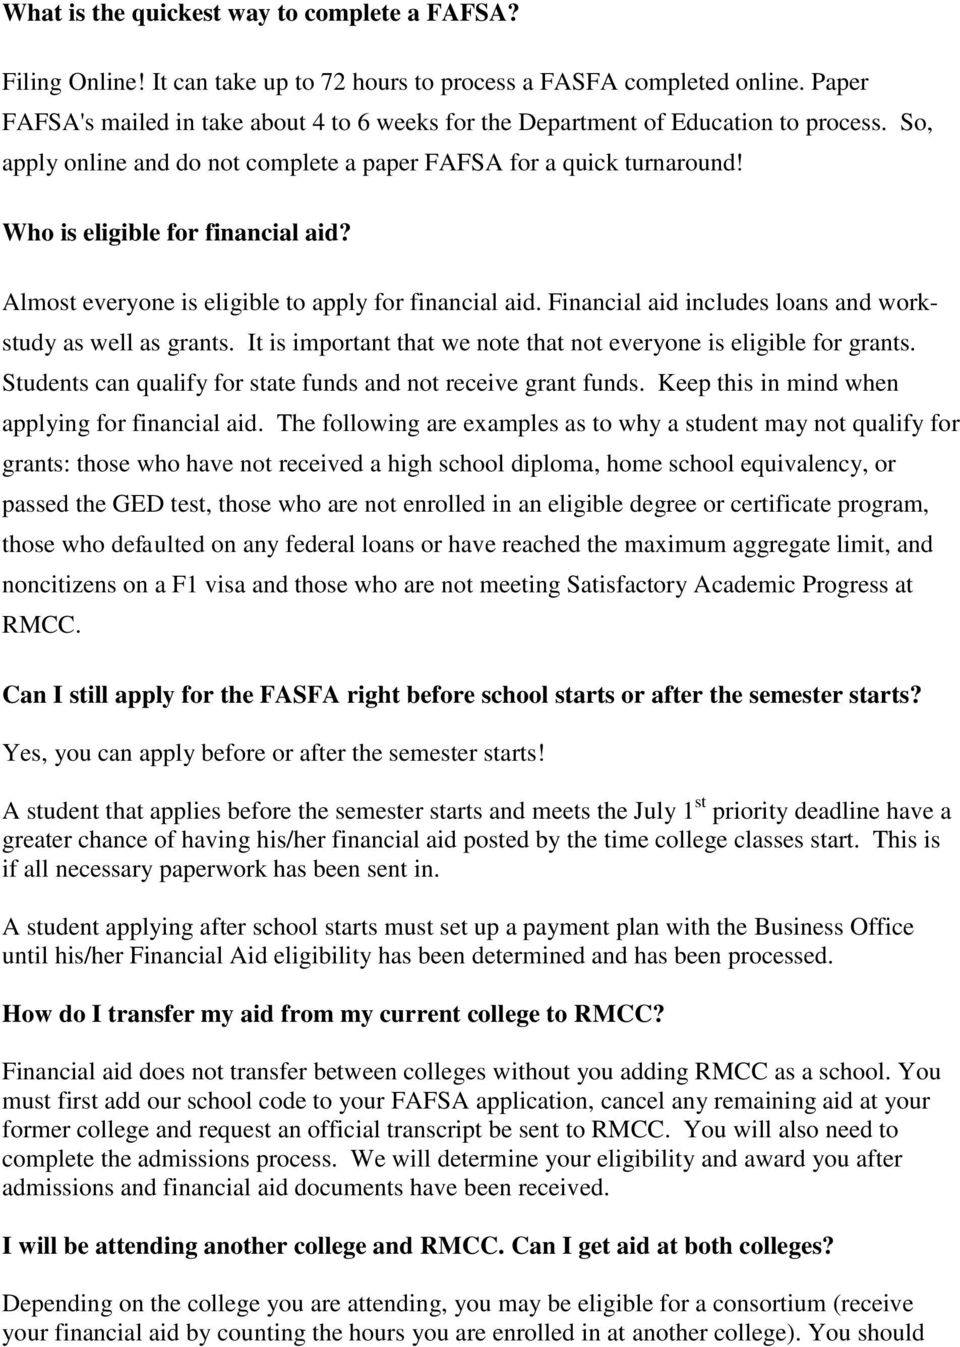 Who is eligible for financial aid? Almost everyone is eligible to apply for financial aid. Financial aid includes loans and workstudy as well as grants.